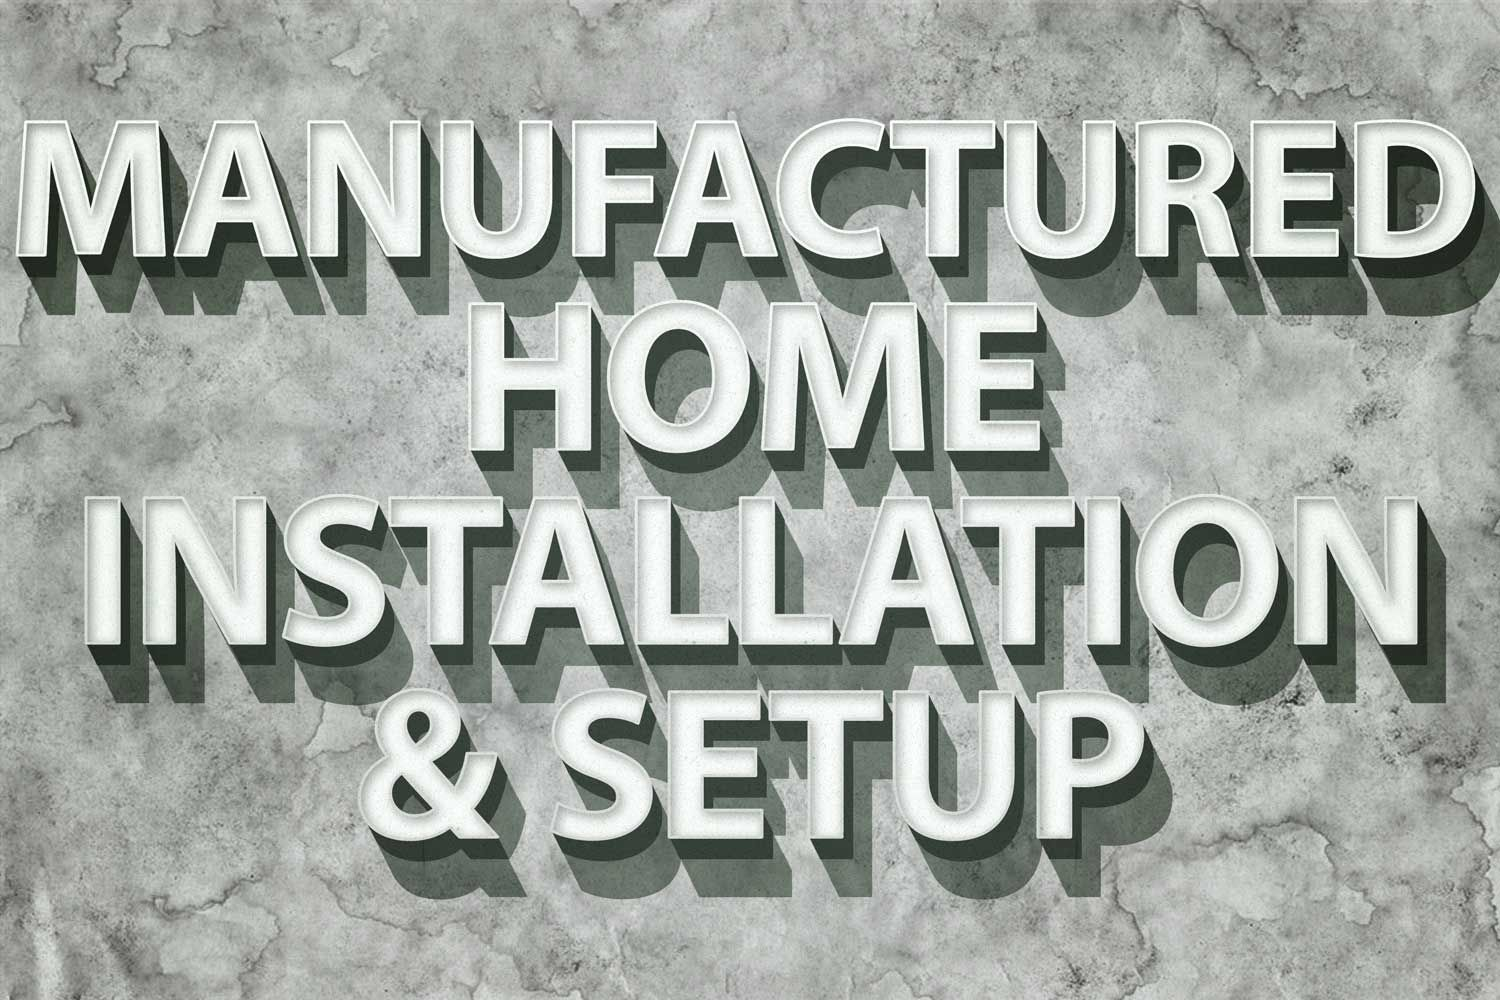 Manufactured Home Installation And Setup | Manufactured and